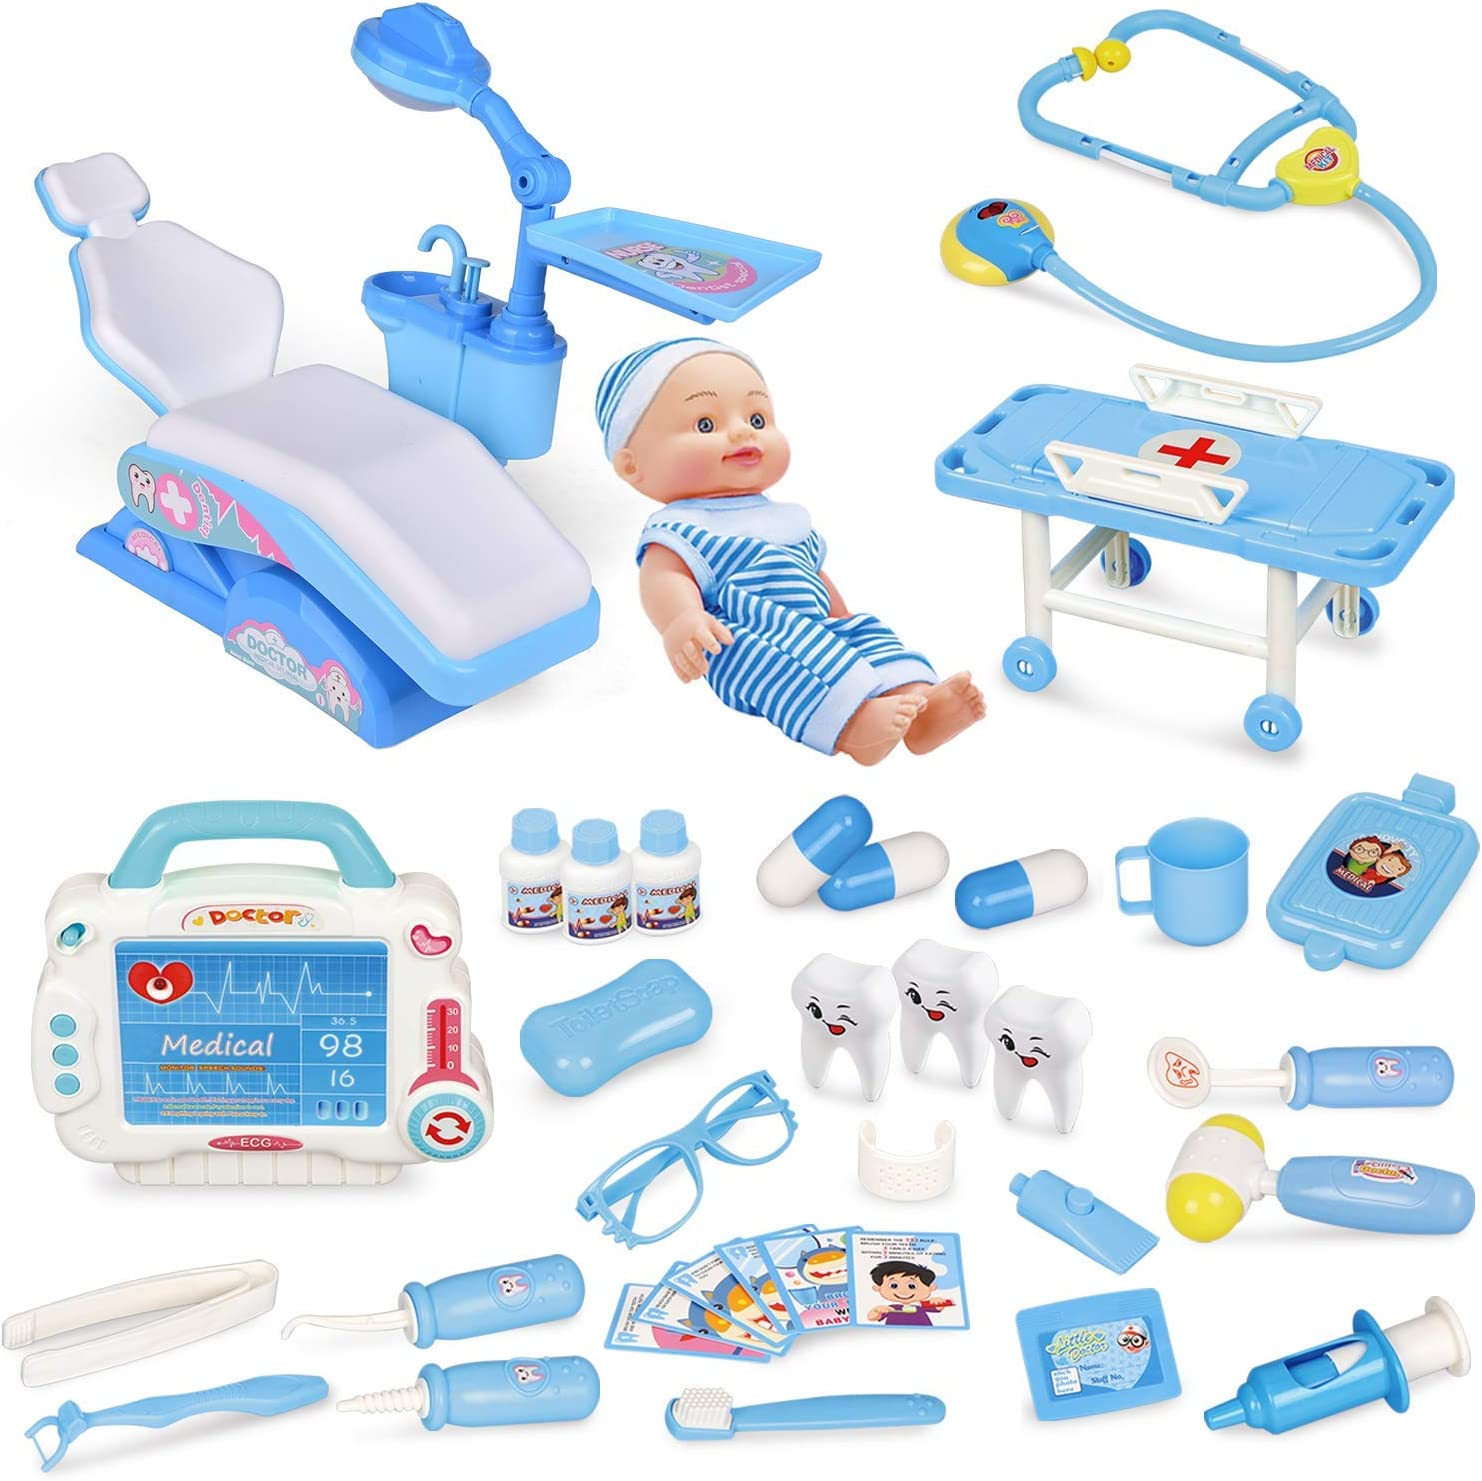 FUN LITTLE TOYS Kids Doctor Kit-33 Pieces, Pretend Play Dentist Medical Kit with Electronic Stethoscope and Dental Unit Chair for Kids and Doctor Roleplay